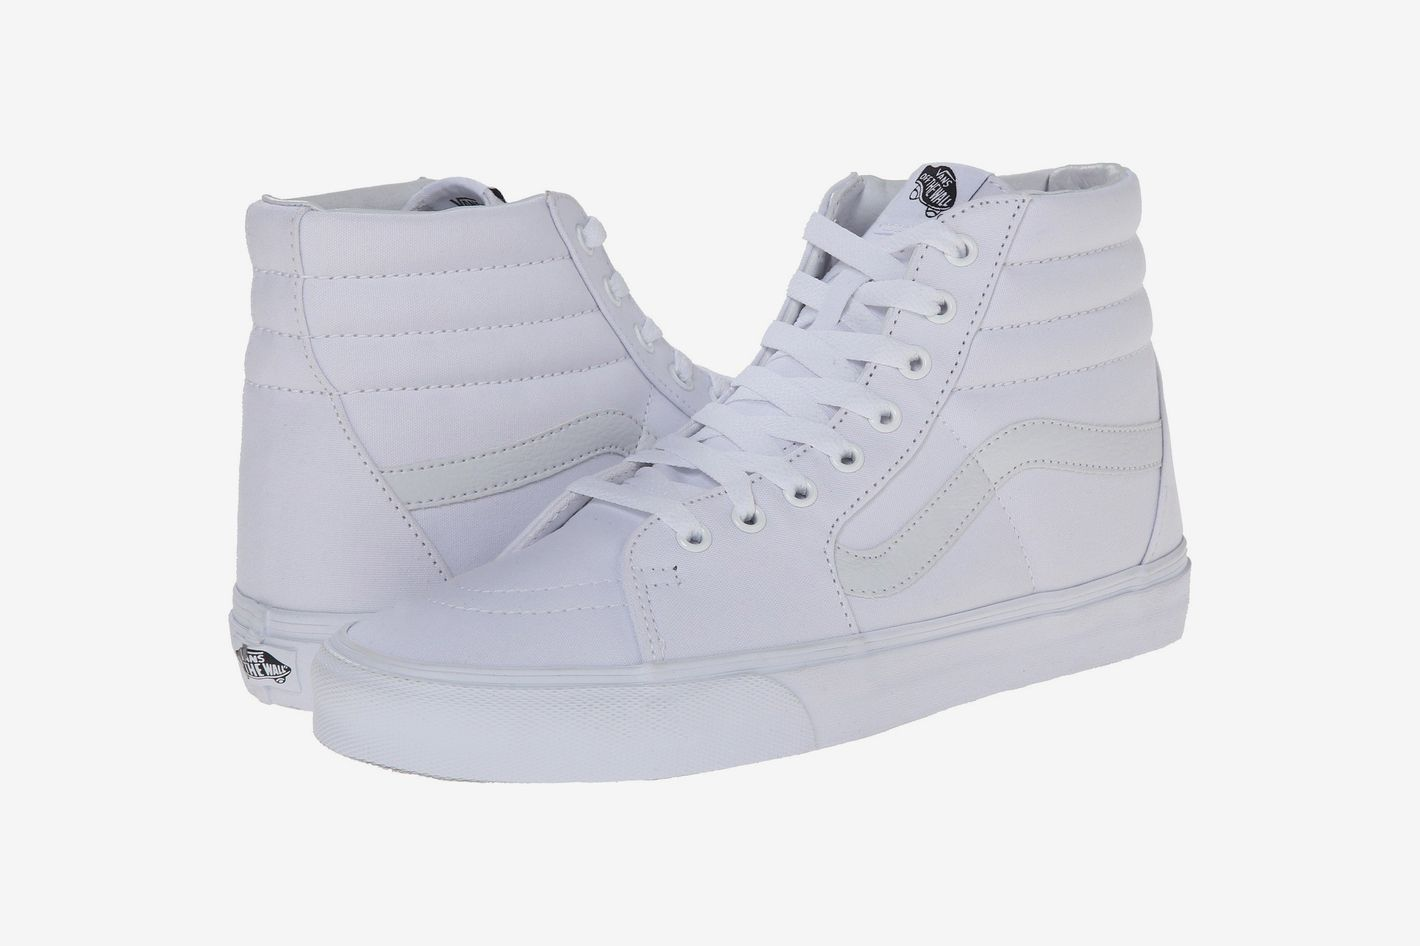 d109b3725ac1 15 Best White Sneakers for Women 2018